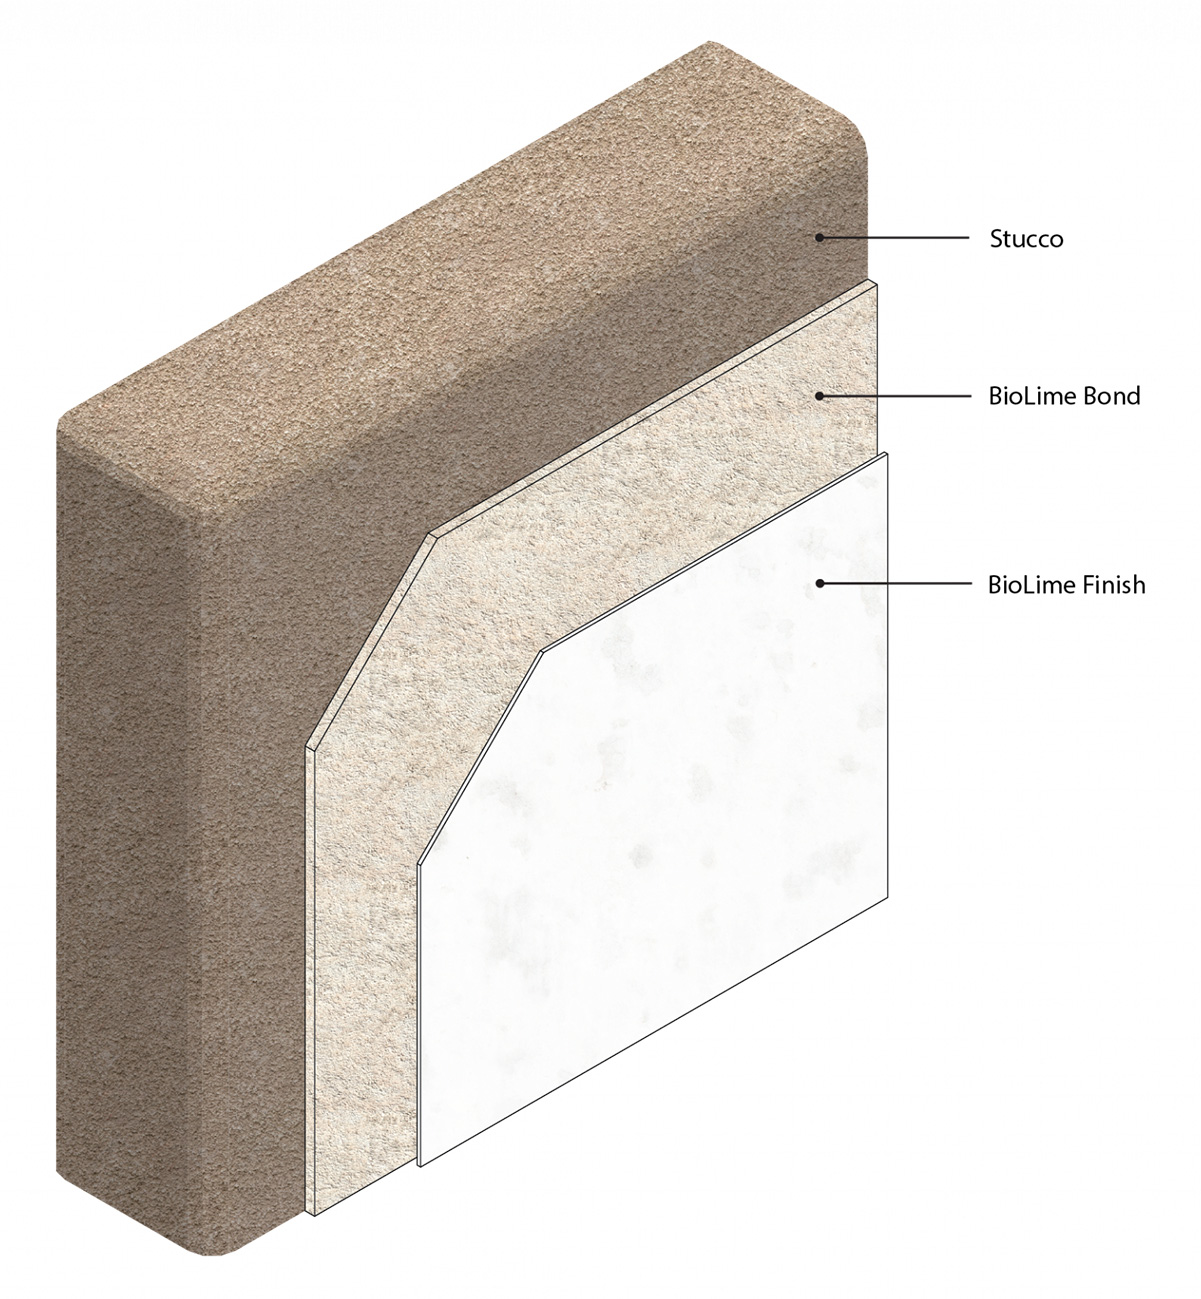 3D isometric image of BioLime plaster for an existing stucco surface